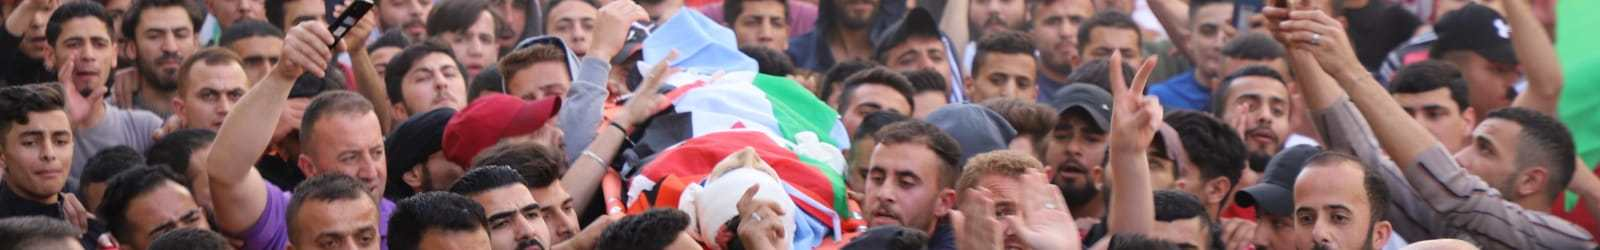 Raid in the West Bank: Palestinian Teen Killed by Israeli Army